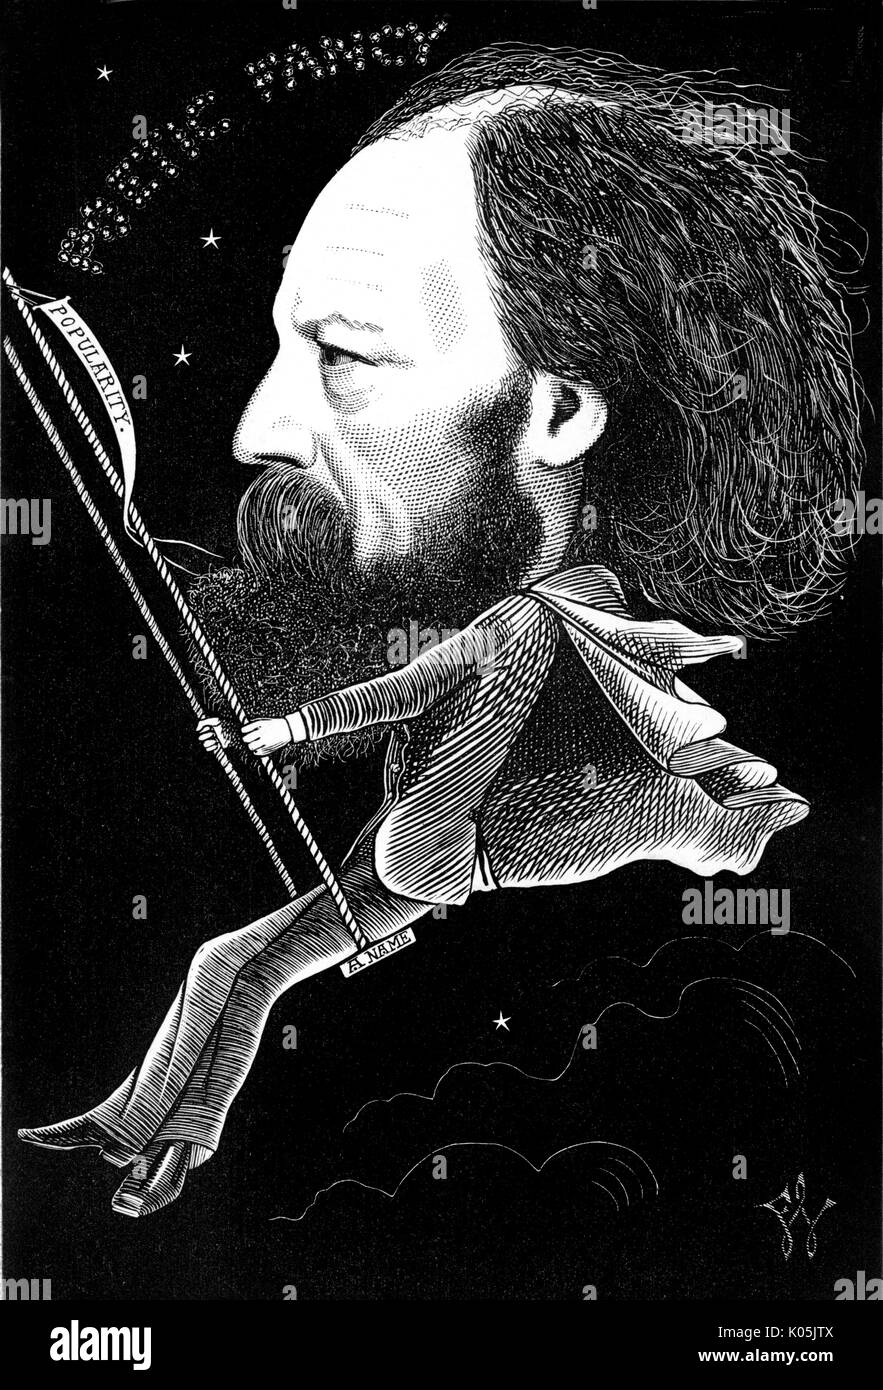 Alfred lord Tennyson (1809 - 1892) the English poet and Poet Laureate whose poetic fancy has helped him make a name for himself on the swing of  popularity     Date: - Stock Image